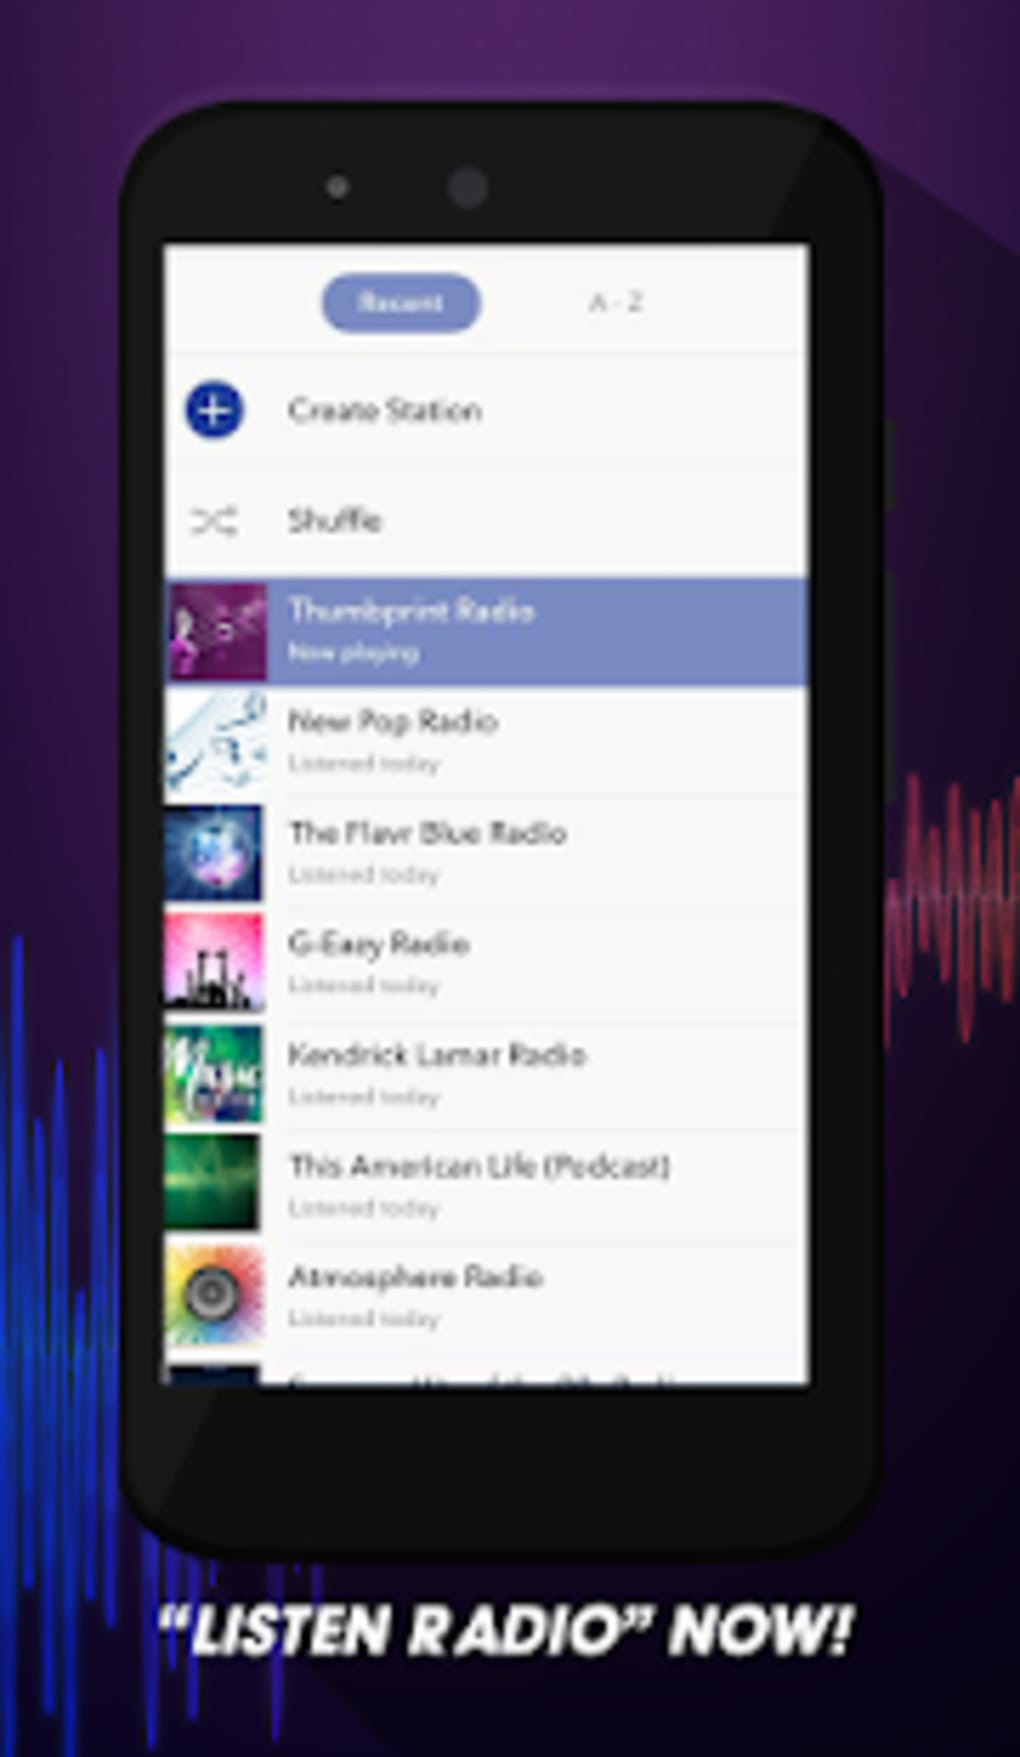 Radio fm live news, sports & music stations am for android apk.